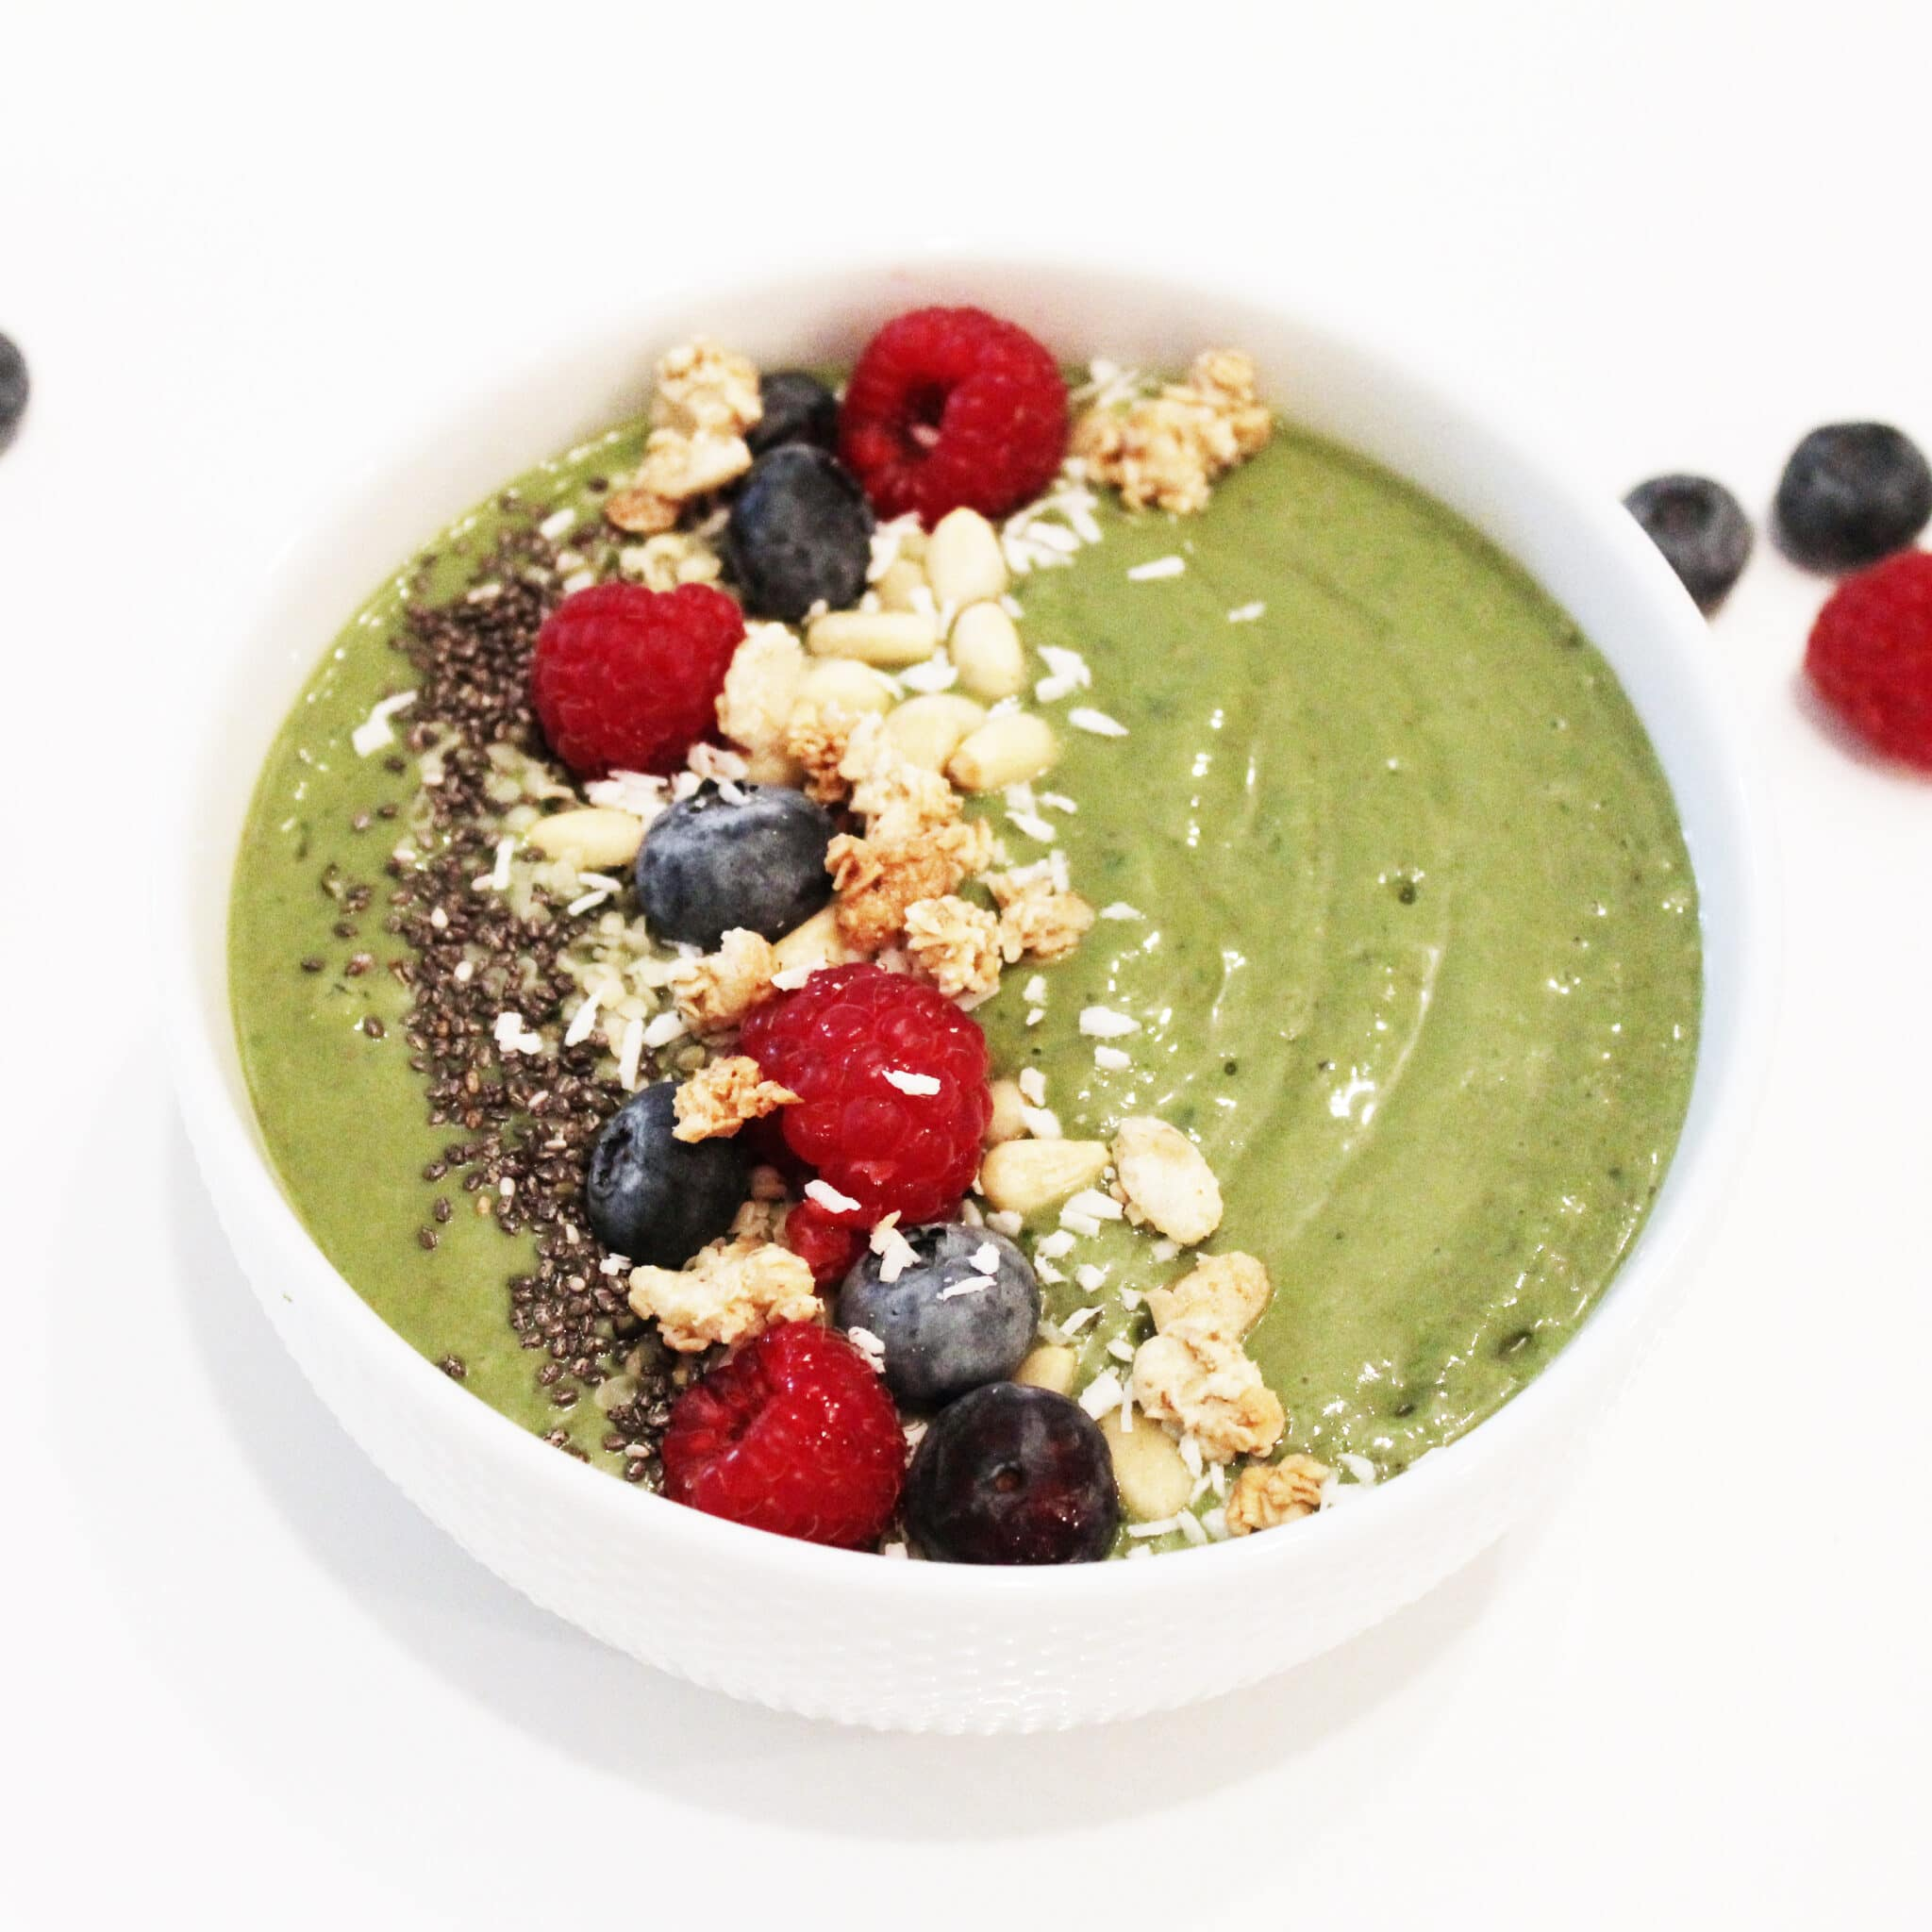 super green smoothie bowl topped with berries, granola, and coconut flakes